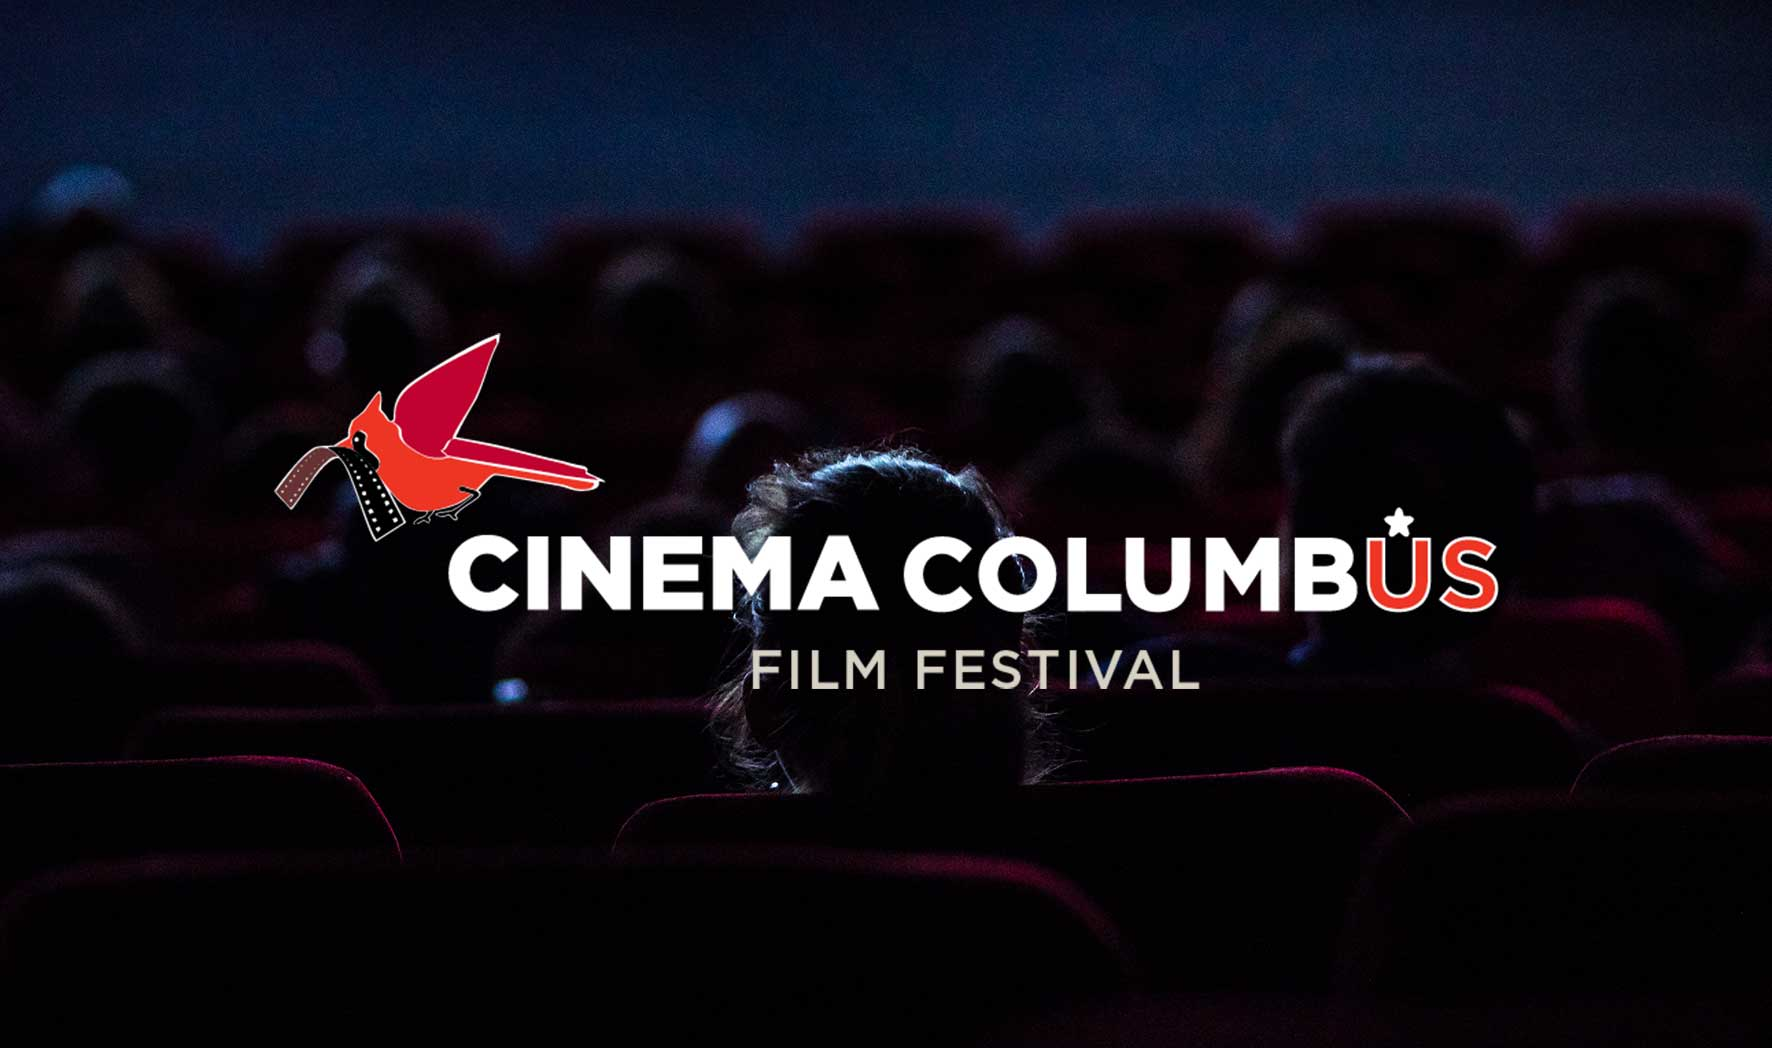 Cinema Columbus Film Festival